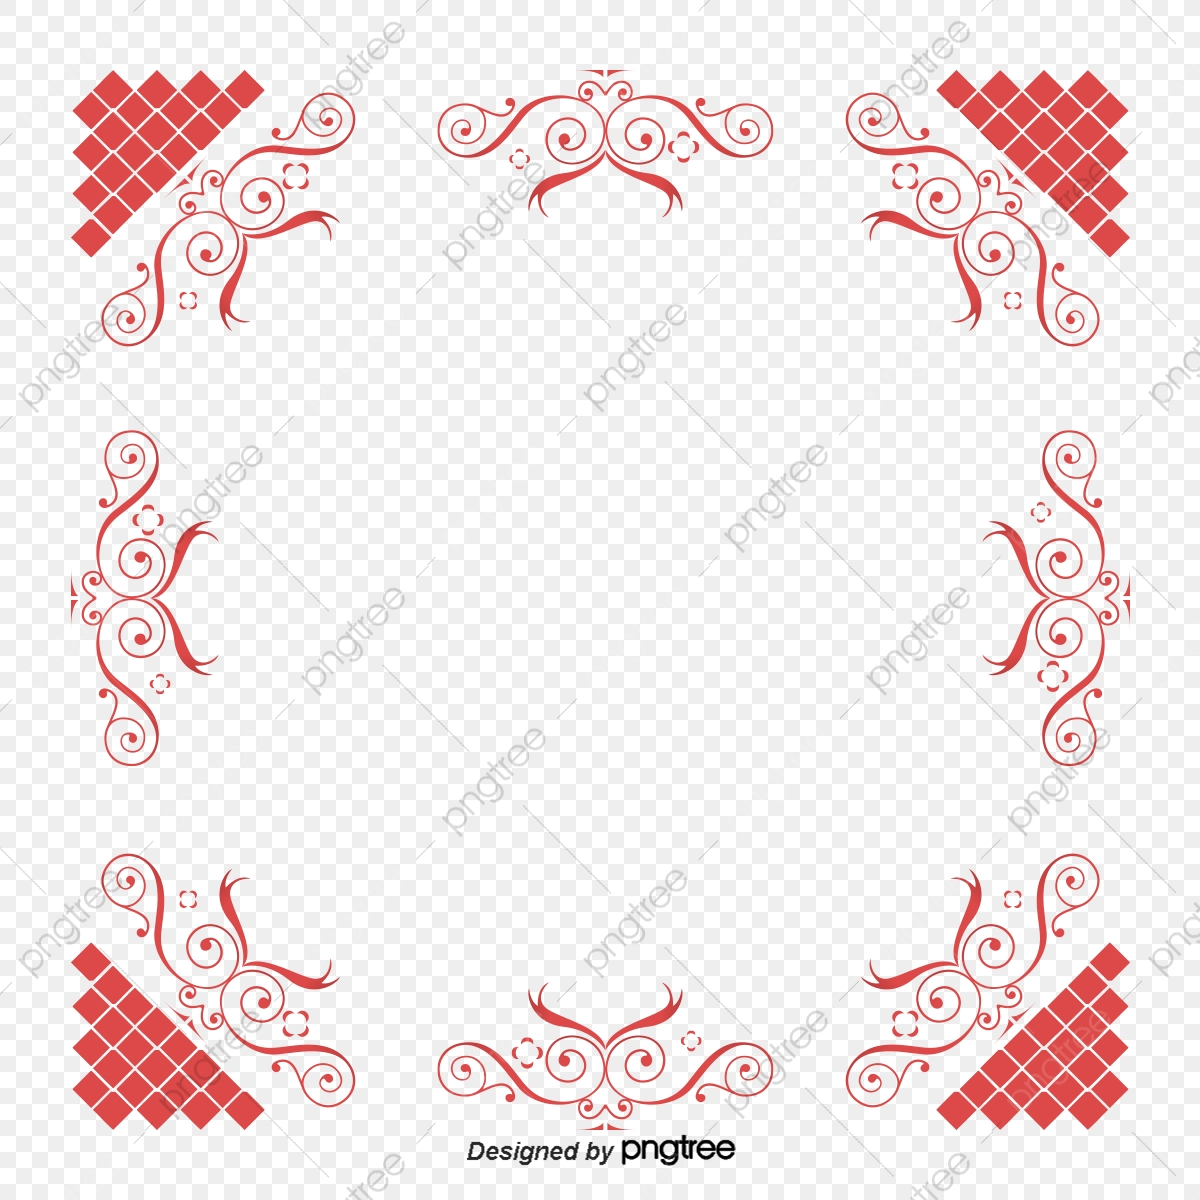 Red Simple Decorative Border Elements, Flower Clipart, Red Border.